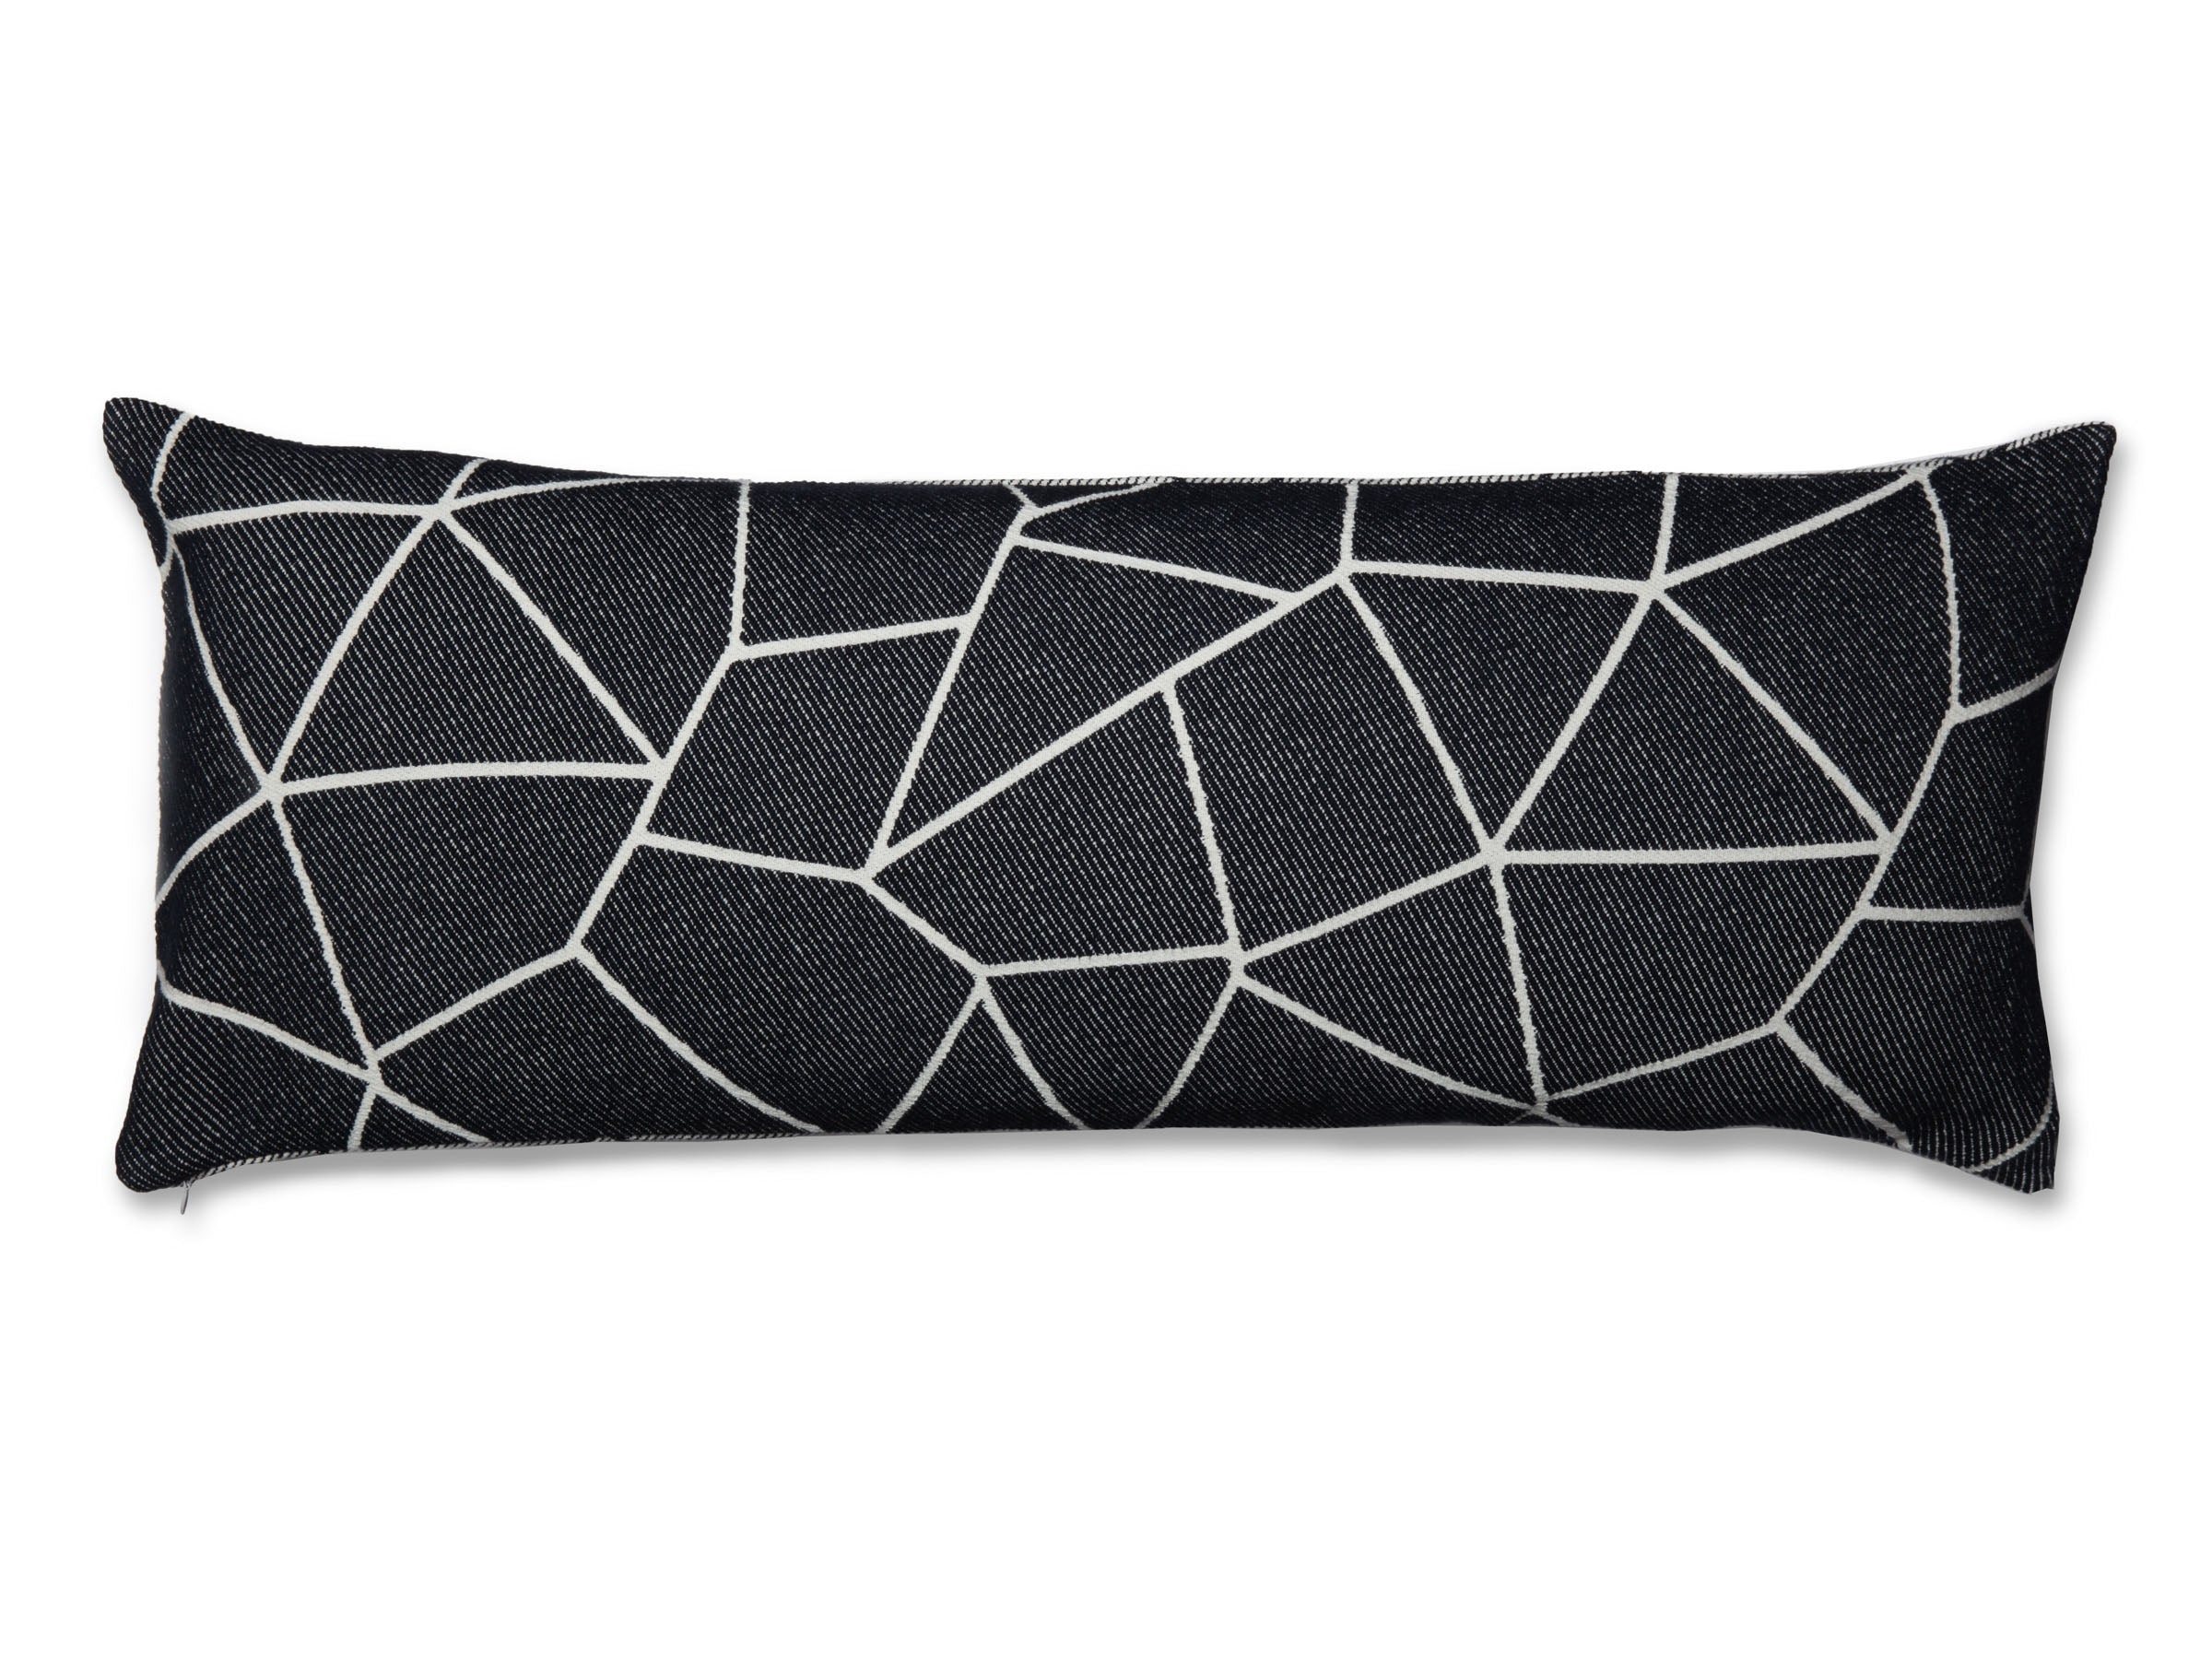 Jacquard Patterned Pillow